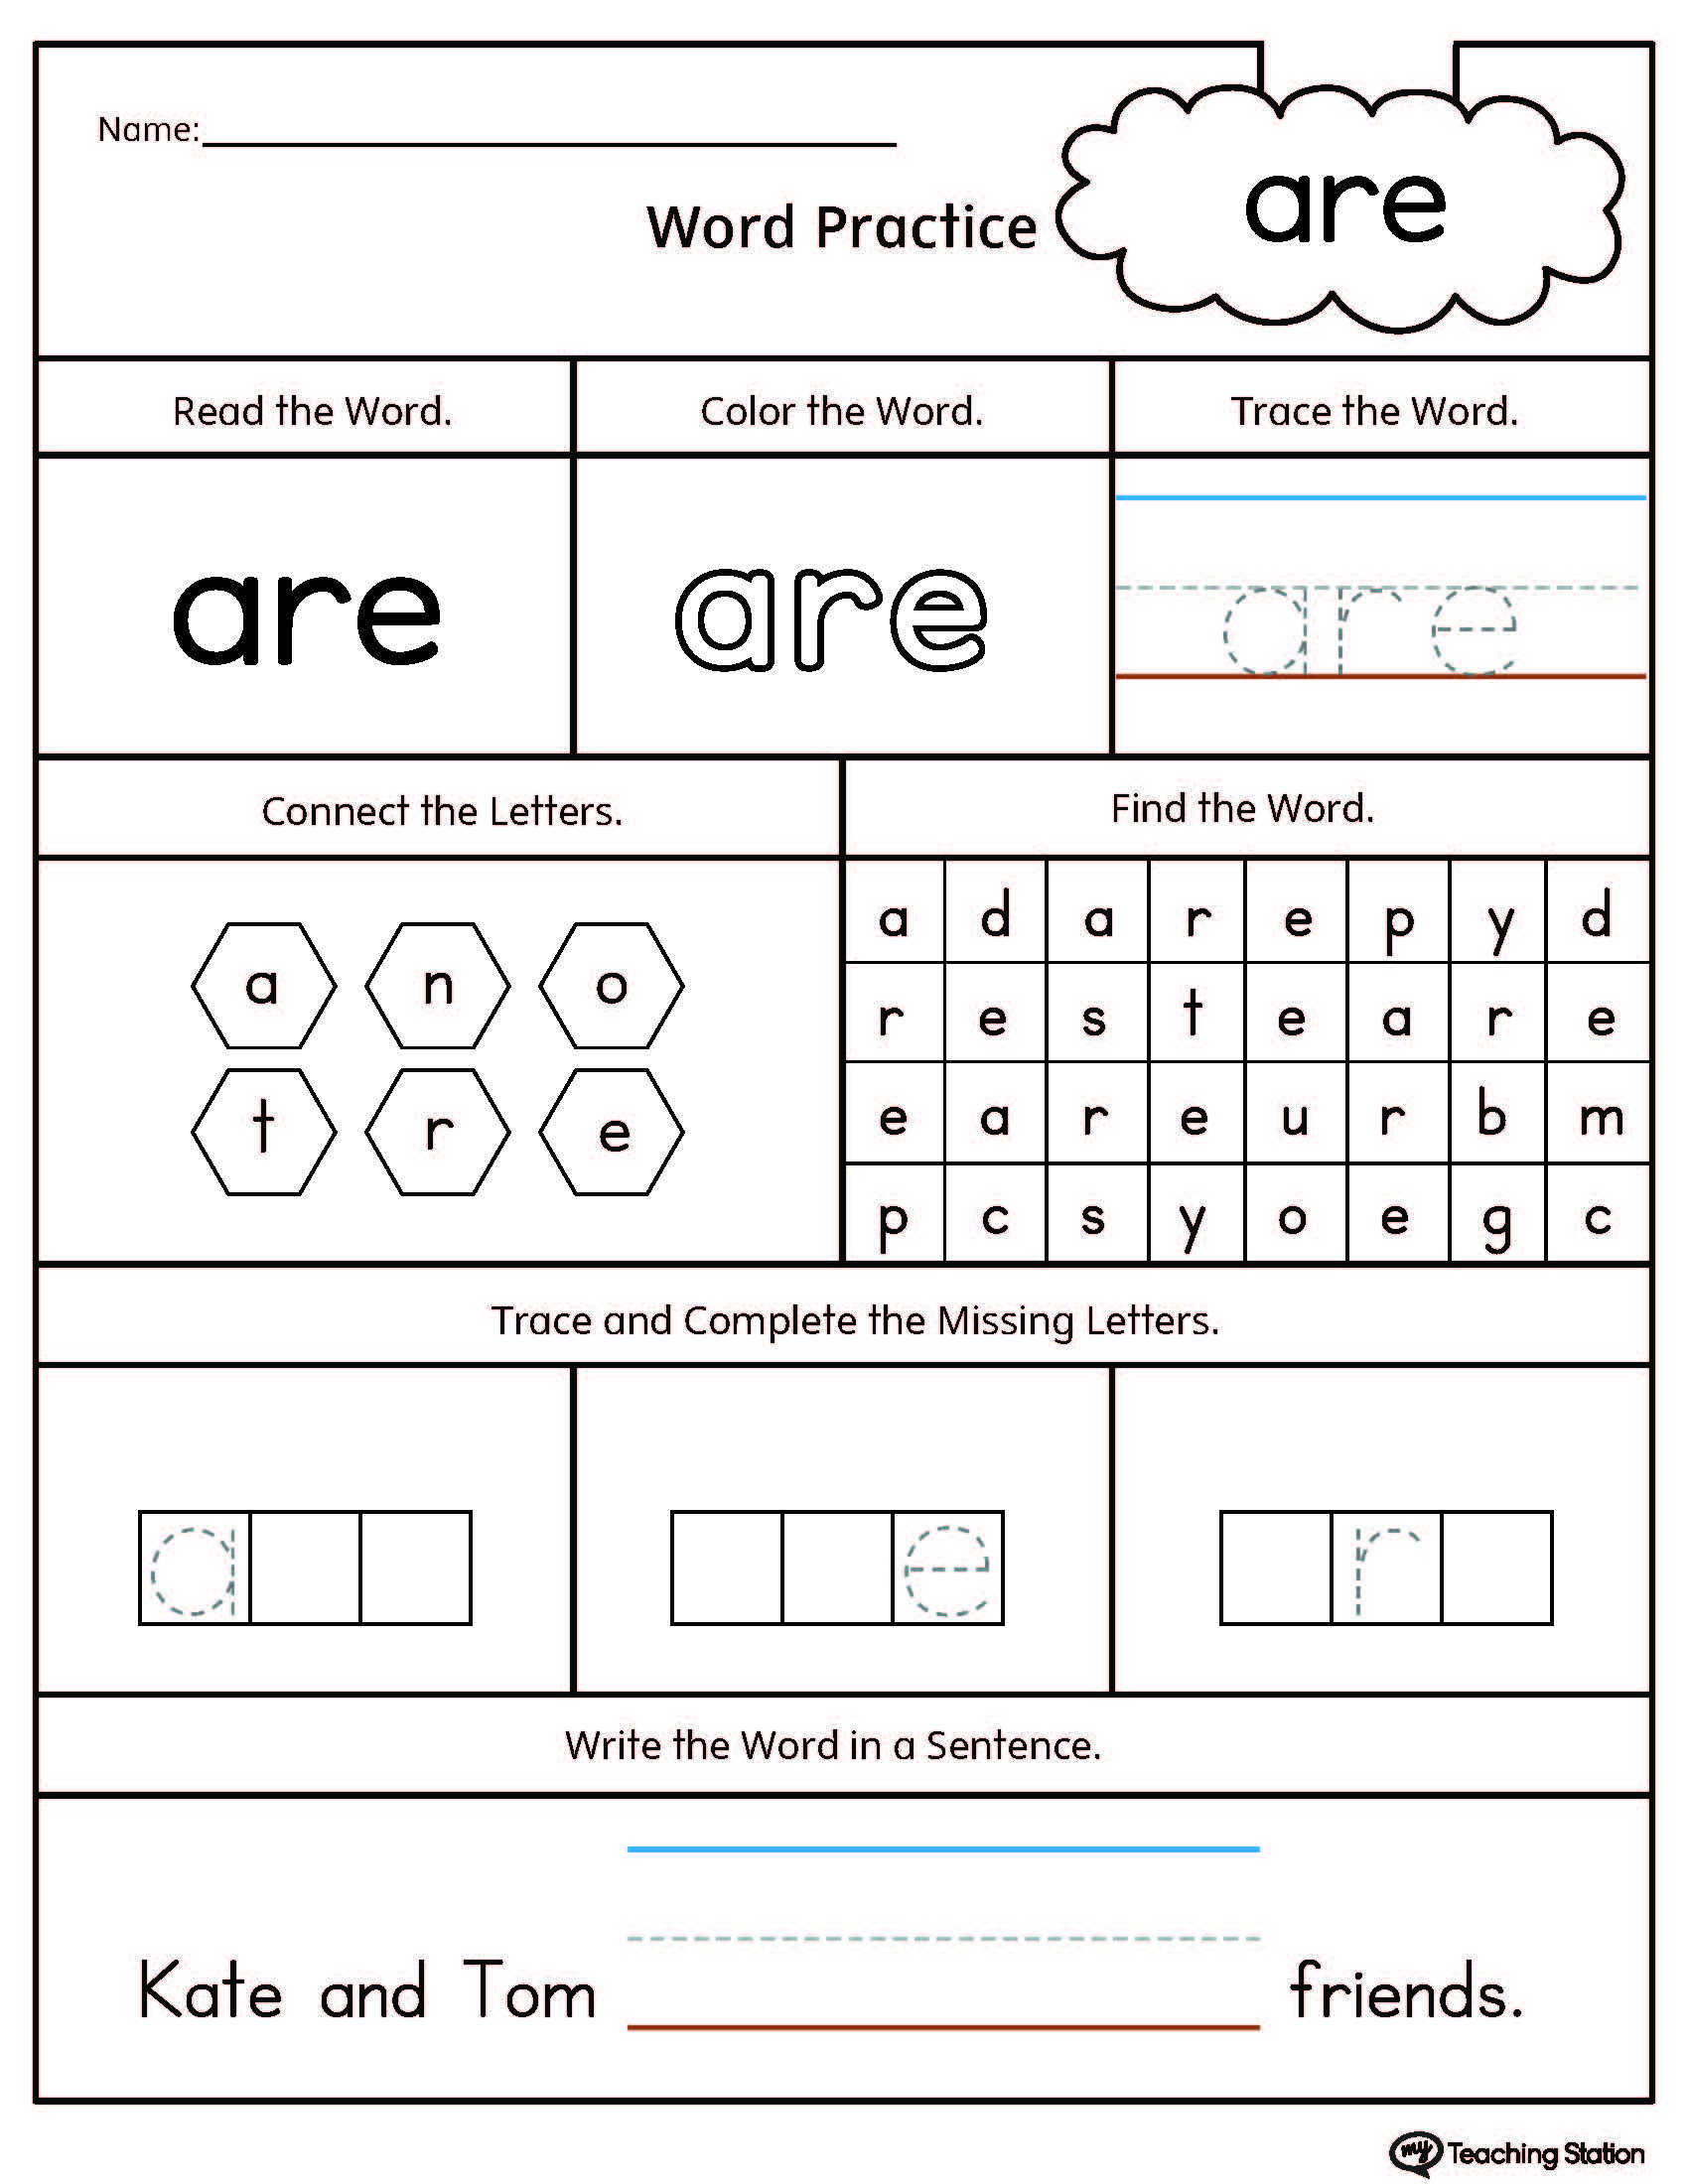 High-Frequency Word ARE Printable Worksheet : MyTeachingStation.com